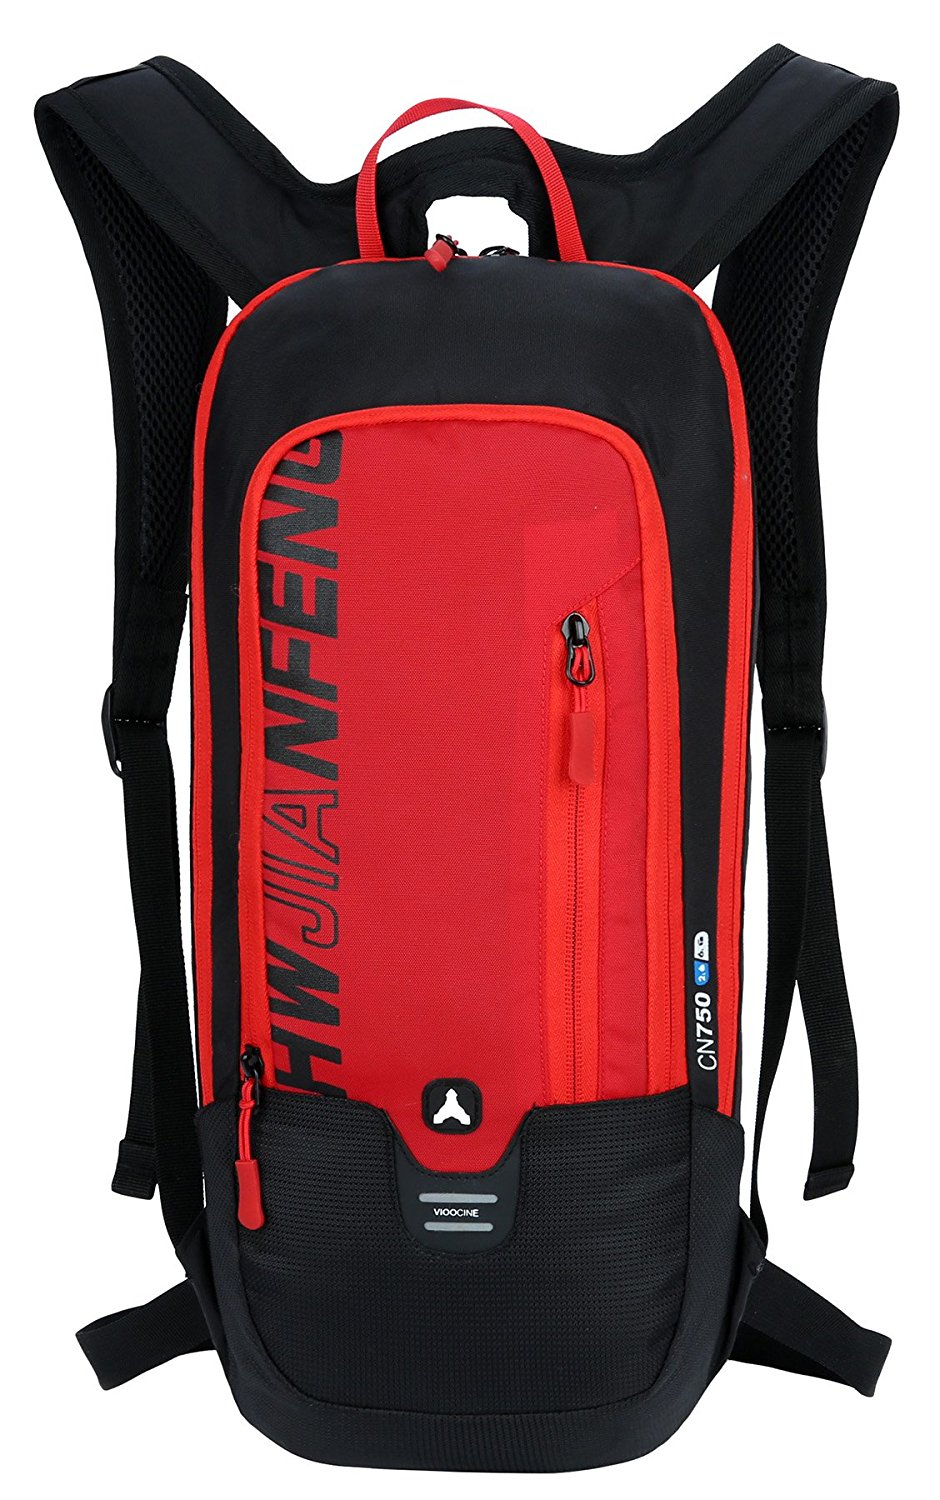 4b2d607e77f5 Get Quotations · Veenajo 10L Cycling Backpack Water-resistant Biking  Rucksack Breathable Hydration Pack Lightweight Ski Rucksack for